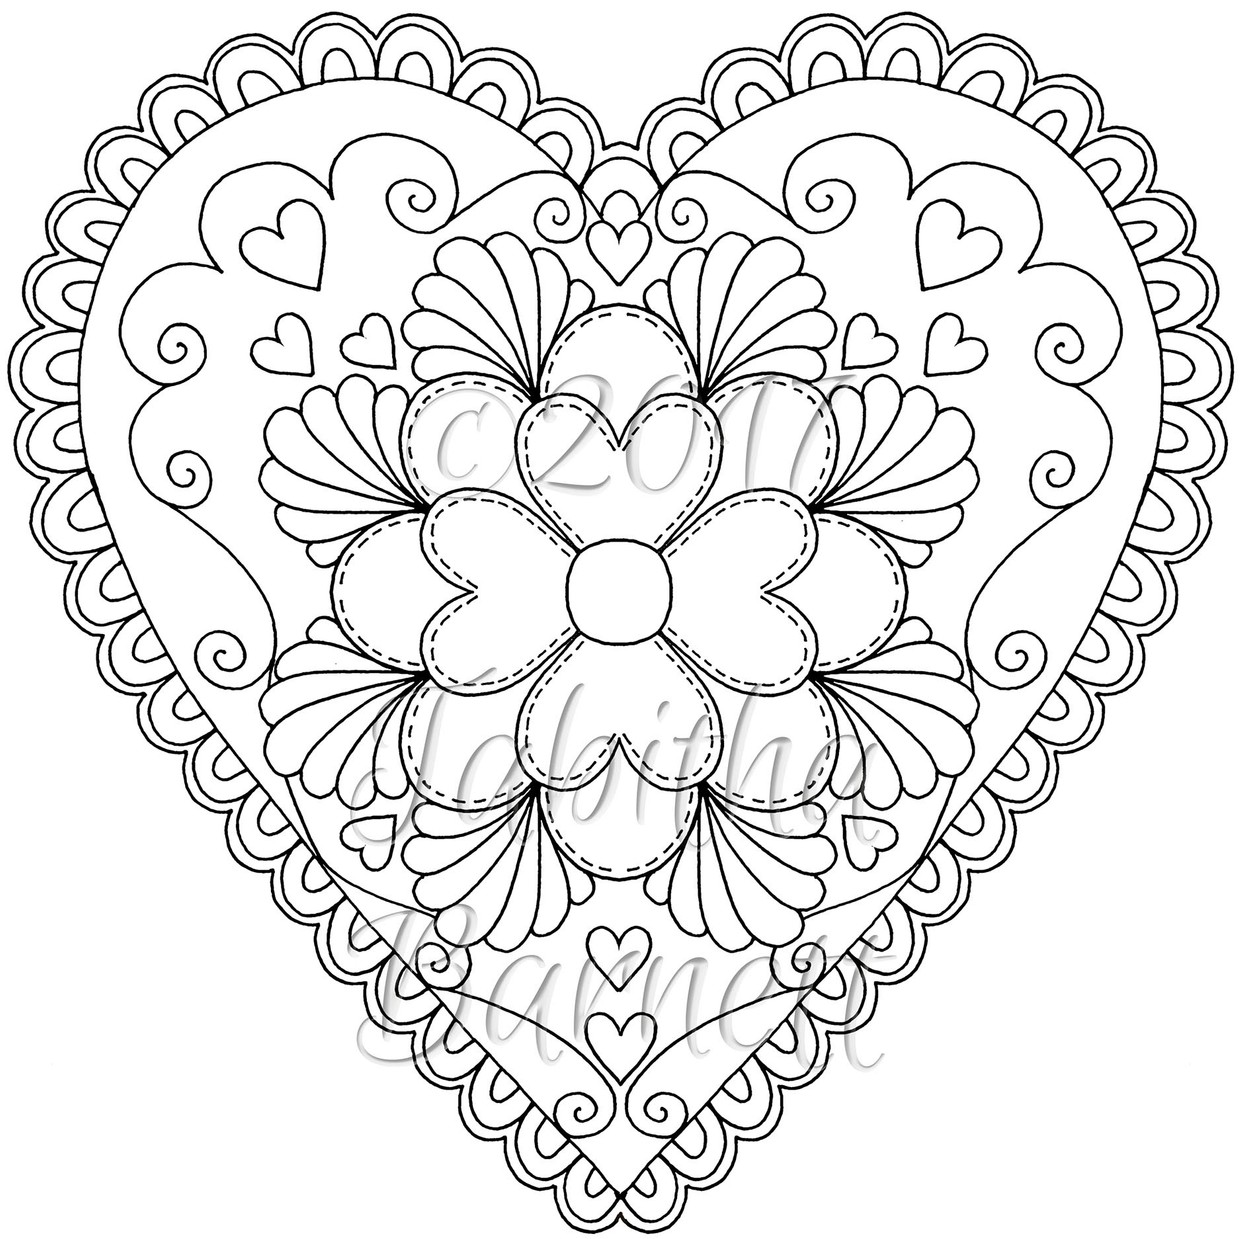 Tangled Hearts Adult Coloring Book PDF